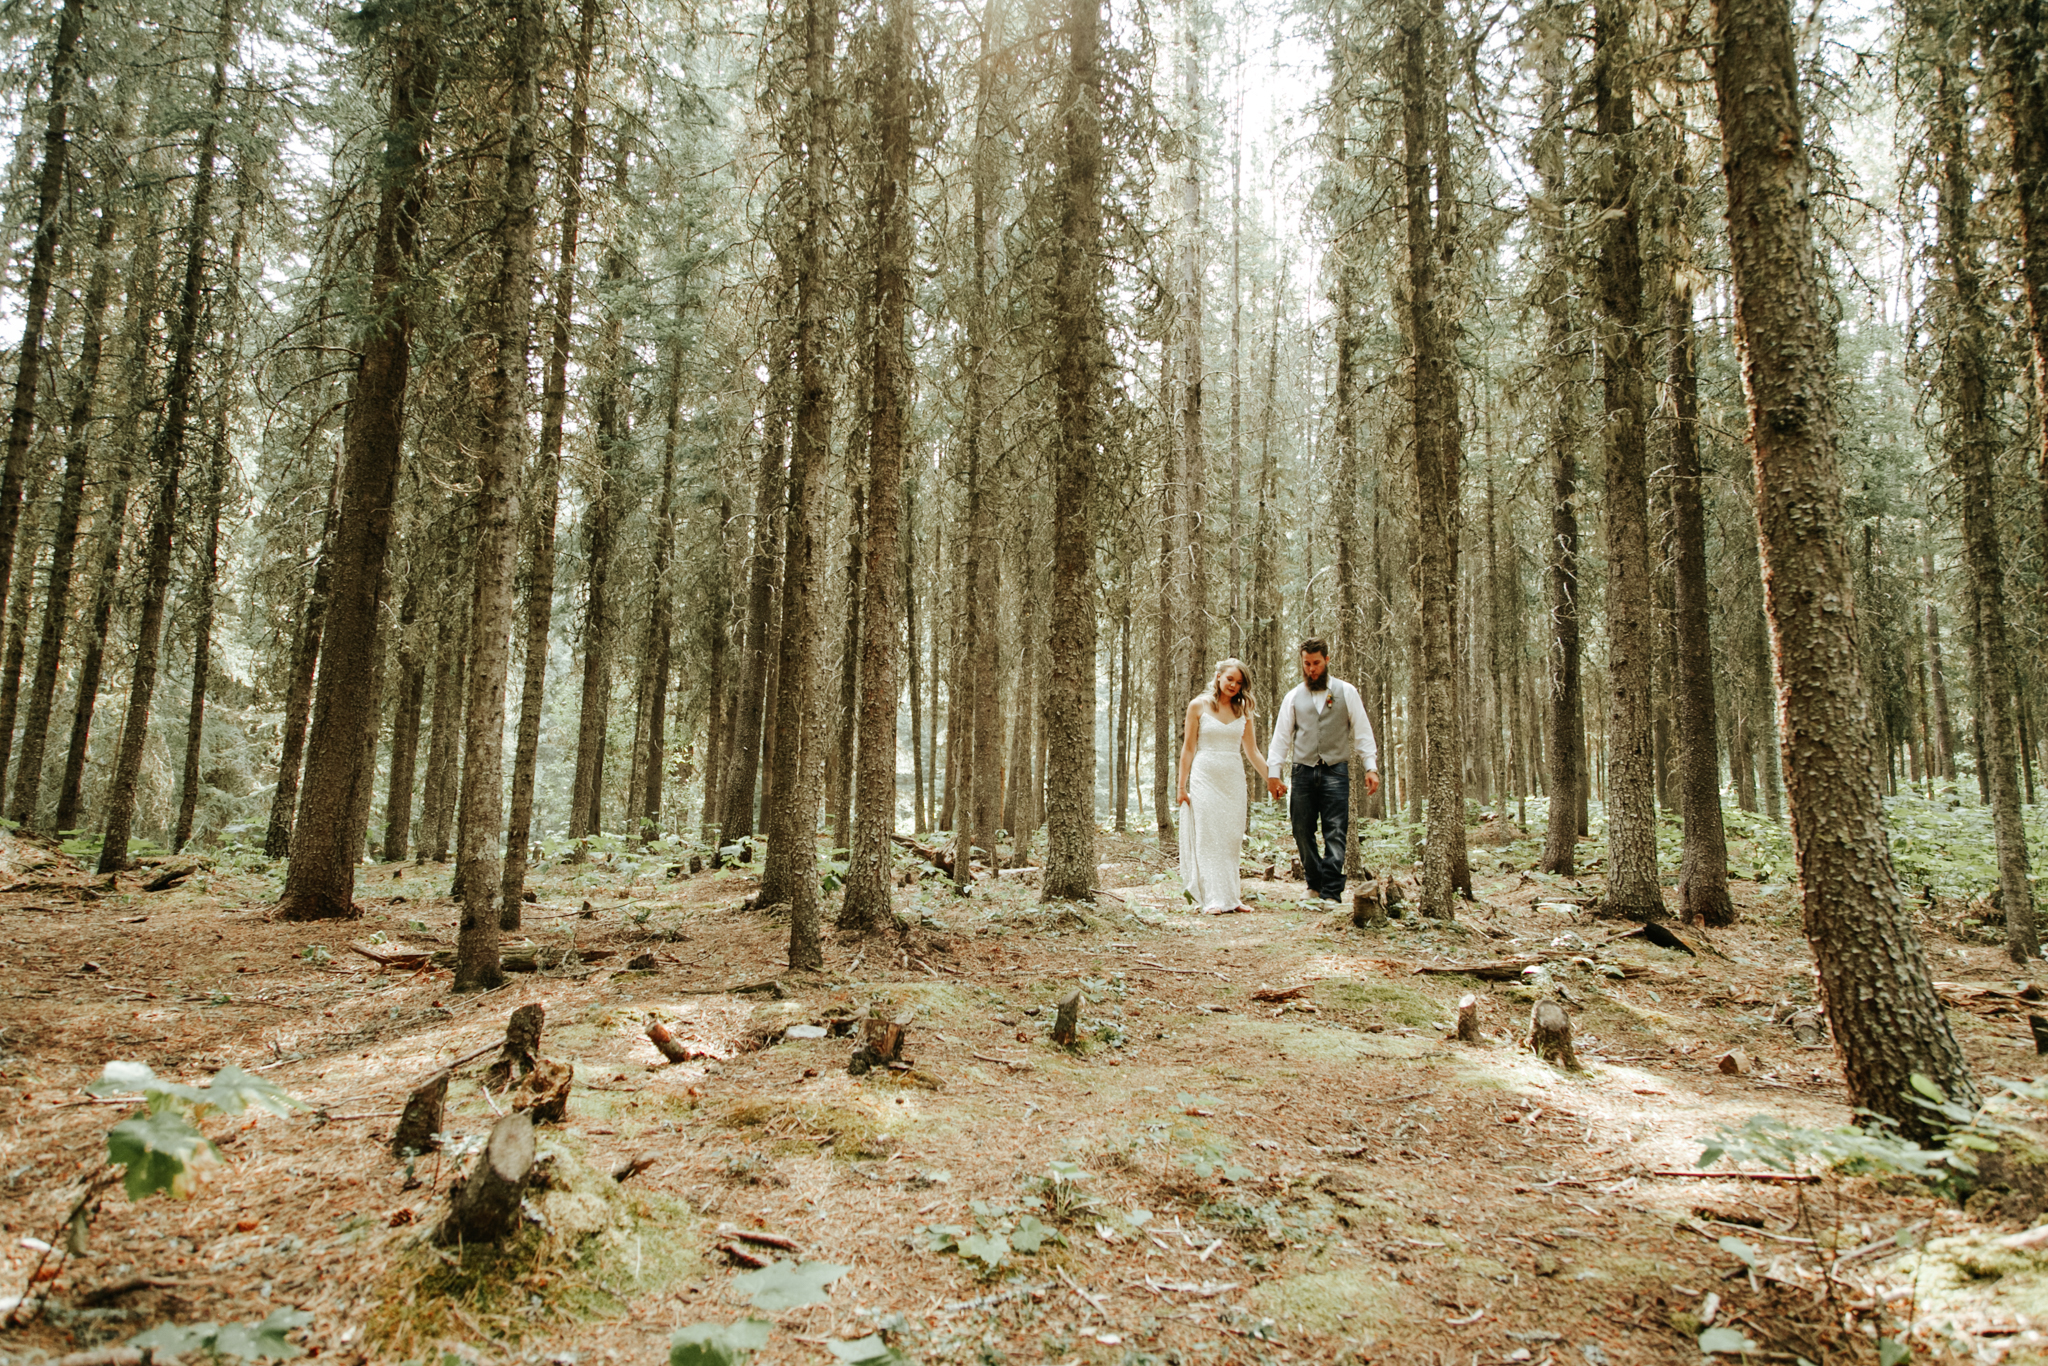 castle-mountain-wedding-photographer-love-and-be-loved-photography-lethbridge-pincher-creek-crowsnest-pass-yannick-rylee-photo-image-picture-152.jpg